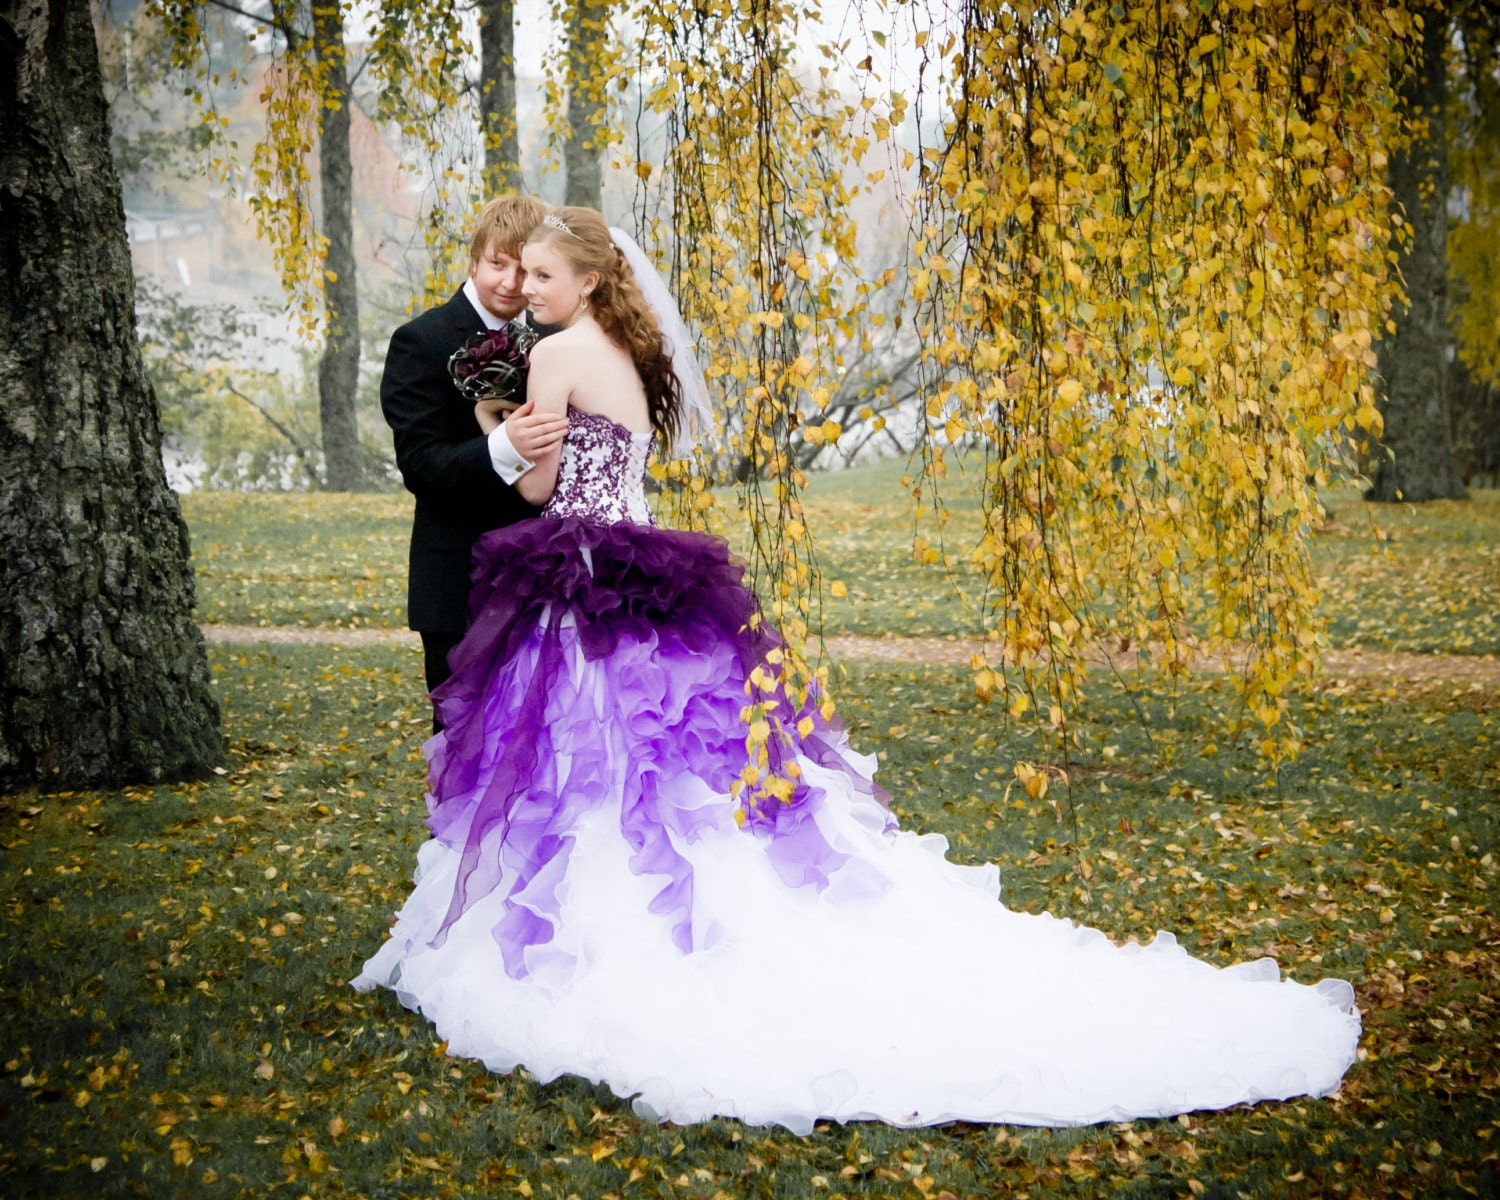 ombre wedding dress ombre wedding dress Dip Dye Purple and White Ombre Wedding Dress Strapless with Lace and Organza